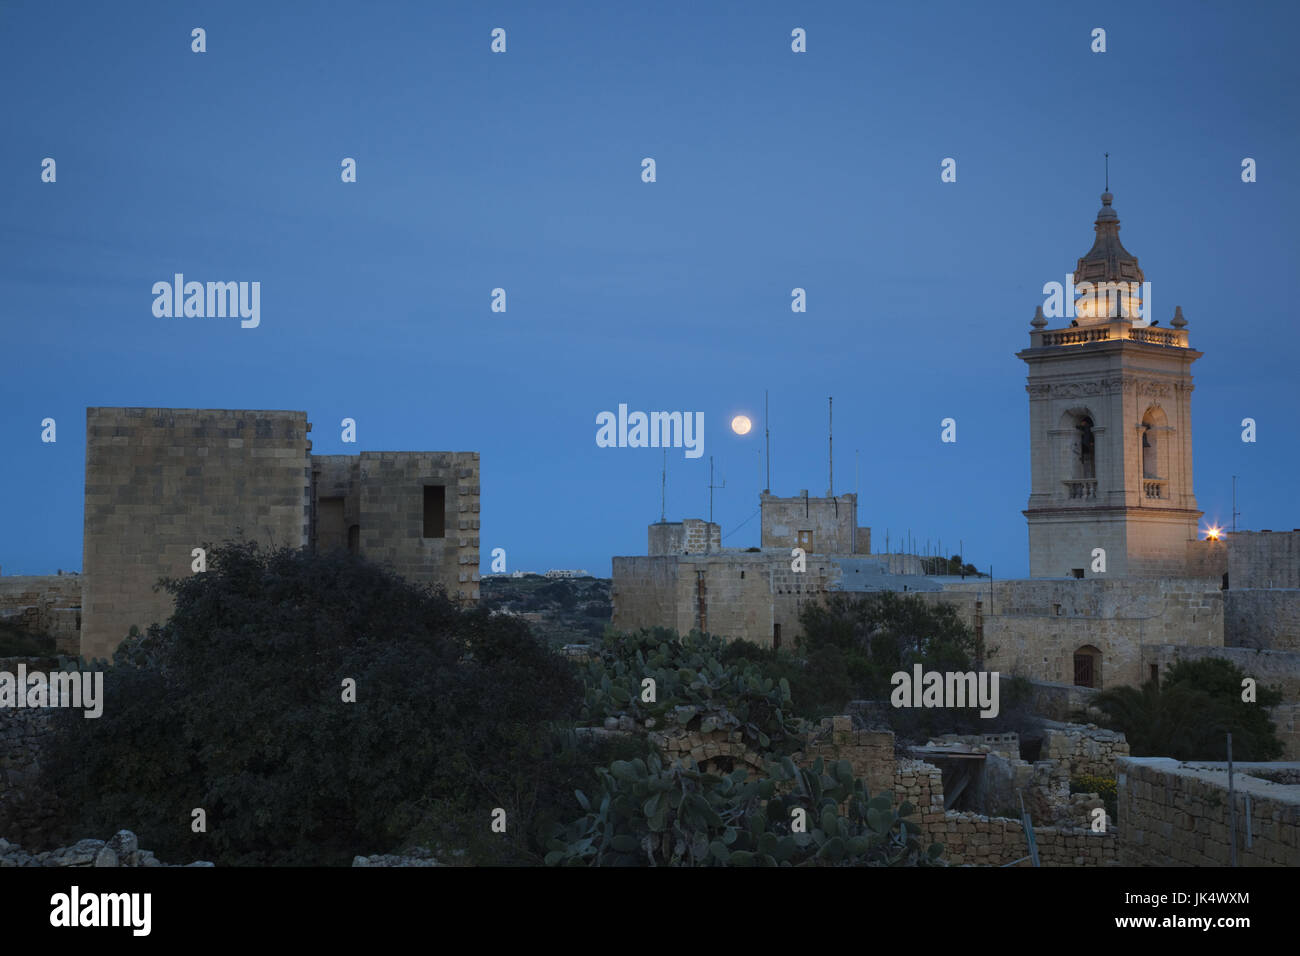 Malta, Gozo Island, Victoria-Rabat, Il-Kastell fortress, tower of Cathedral of the Assumption and moonrise - Stock Image